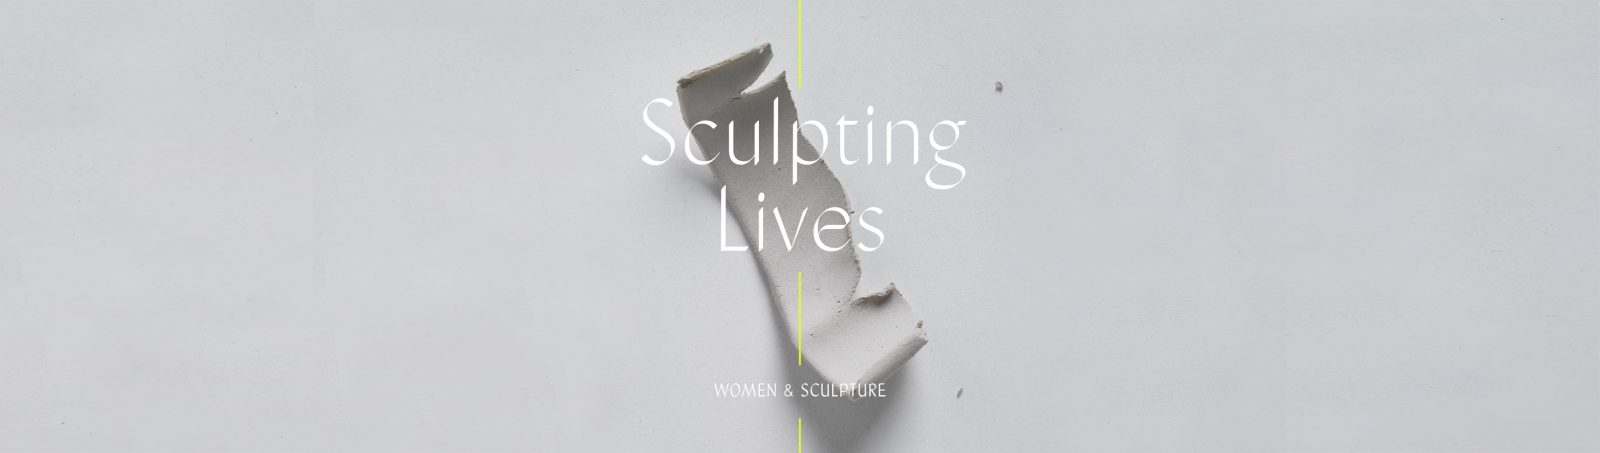 sculpting lives women